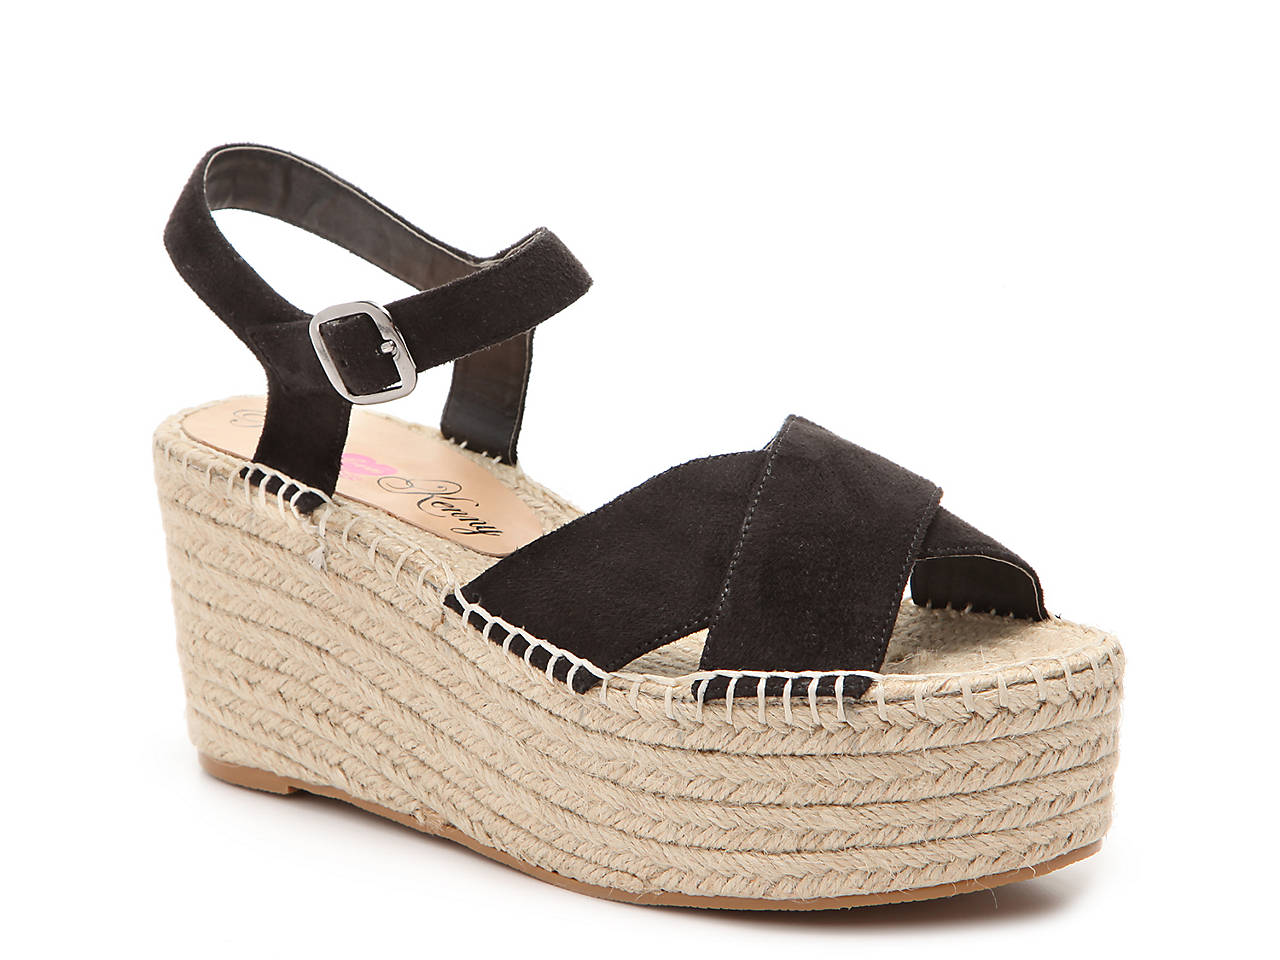 Friend Wedge Sandal by Penny Loves Kenny